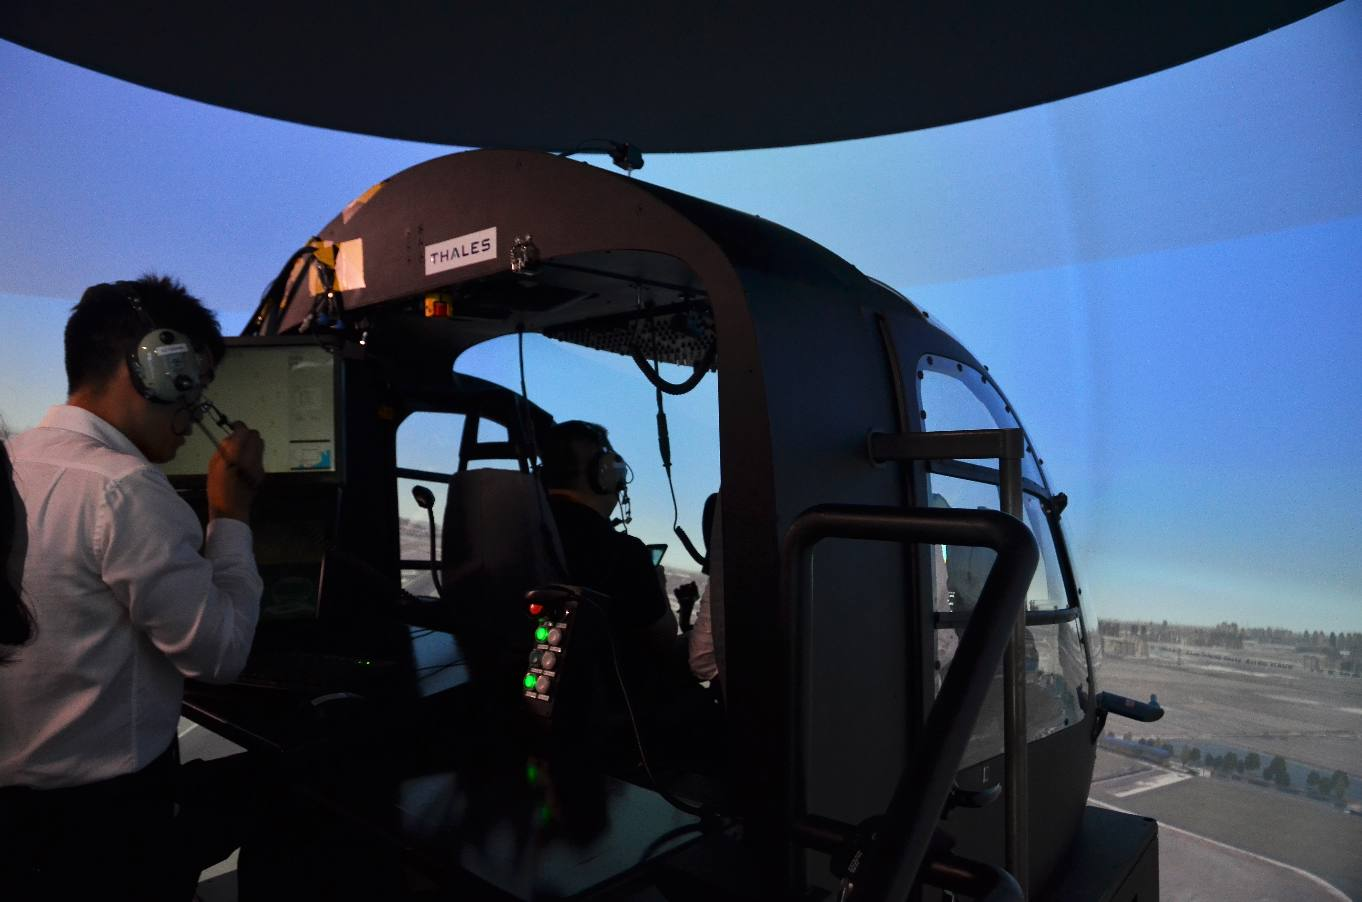 Chinese qualification for Thales EC135 simulator